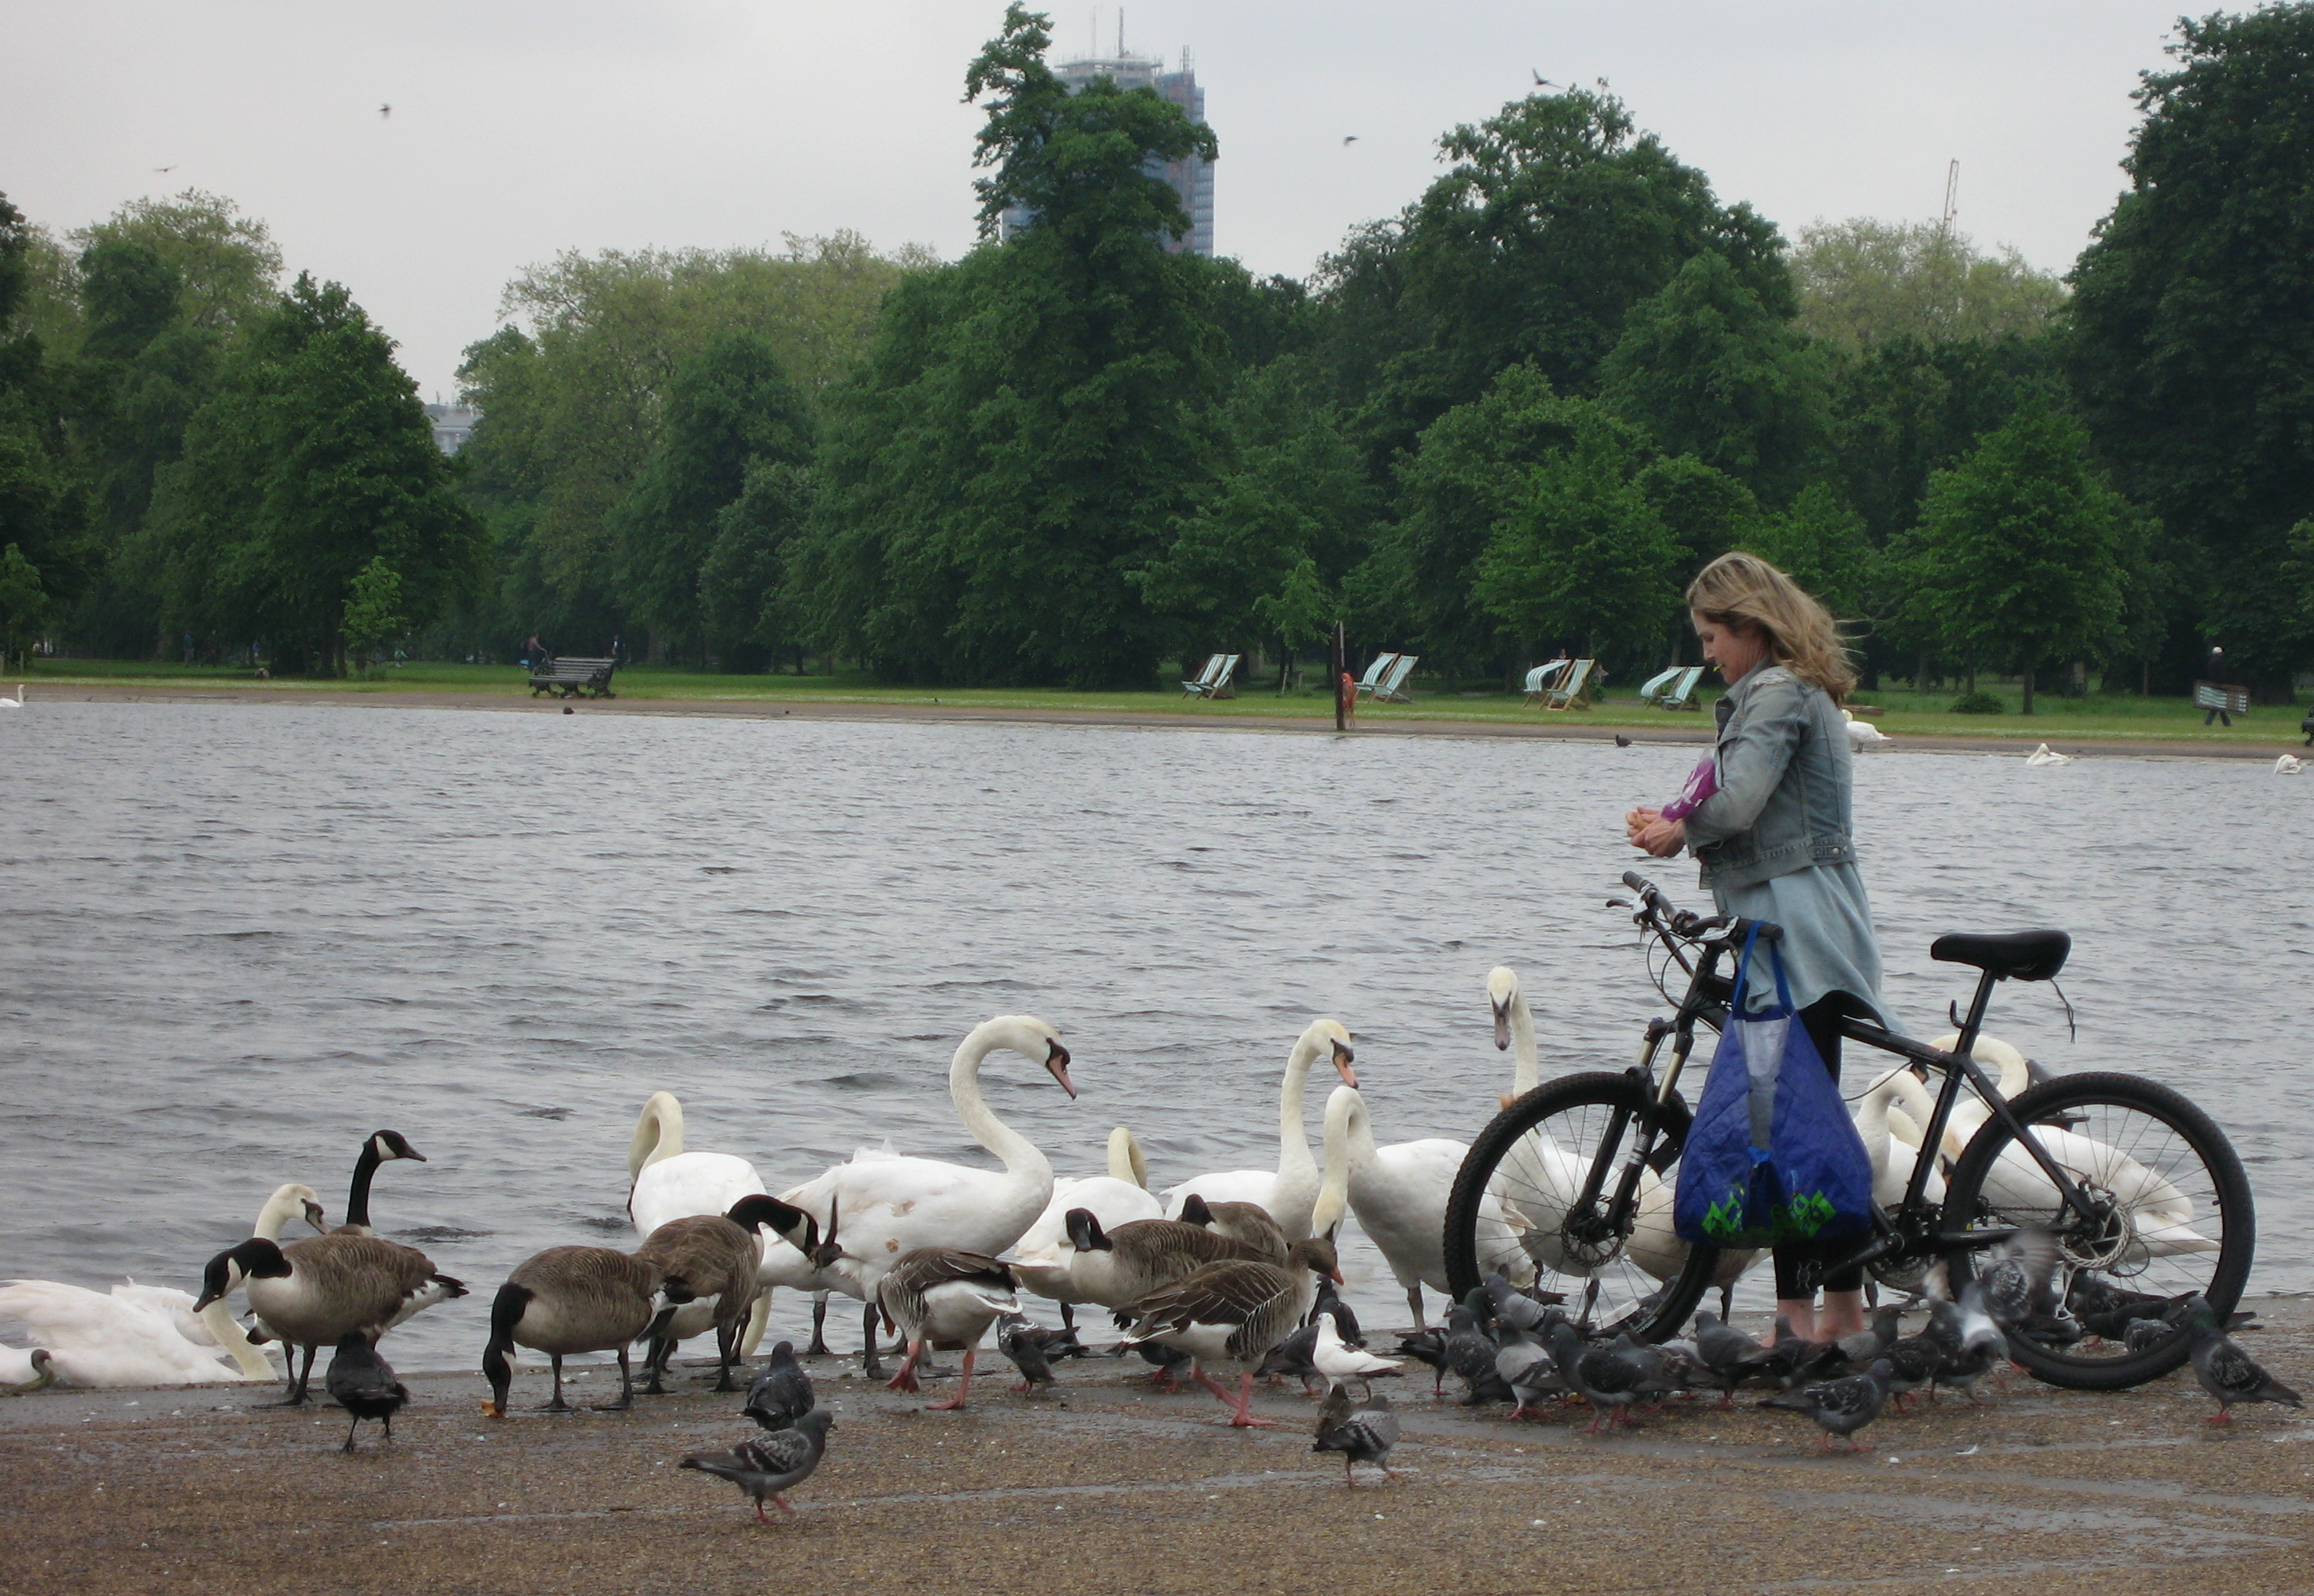 Kensington's ducks being fed. Photo by me.